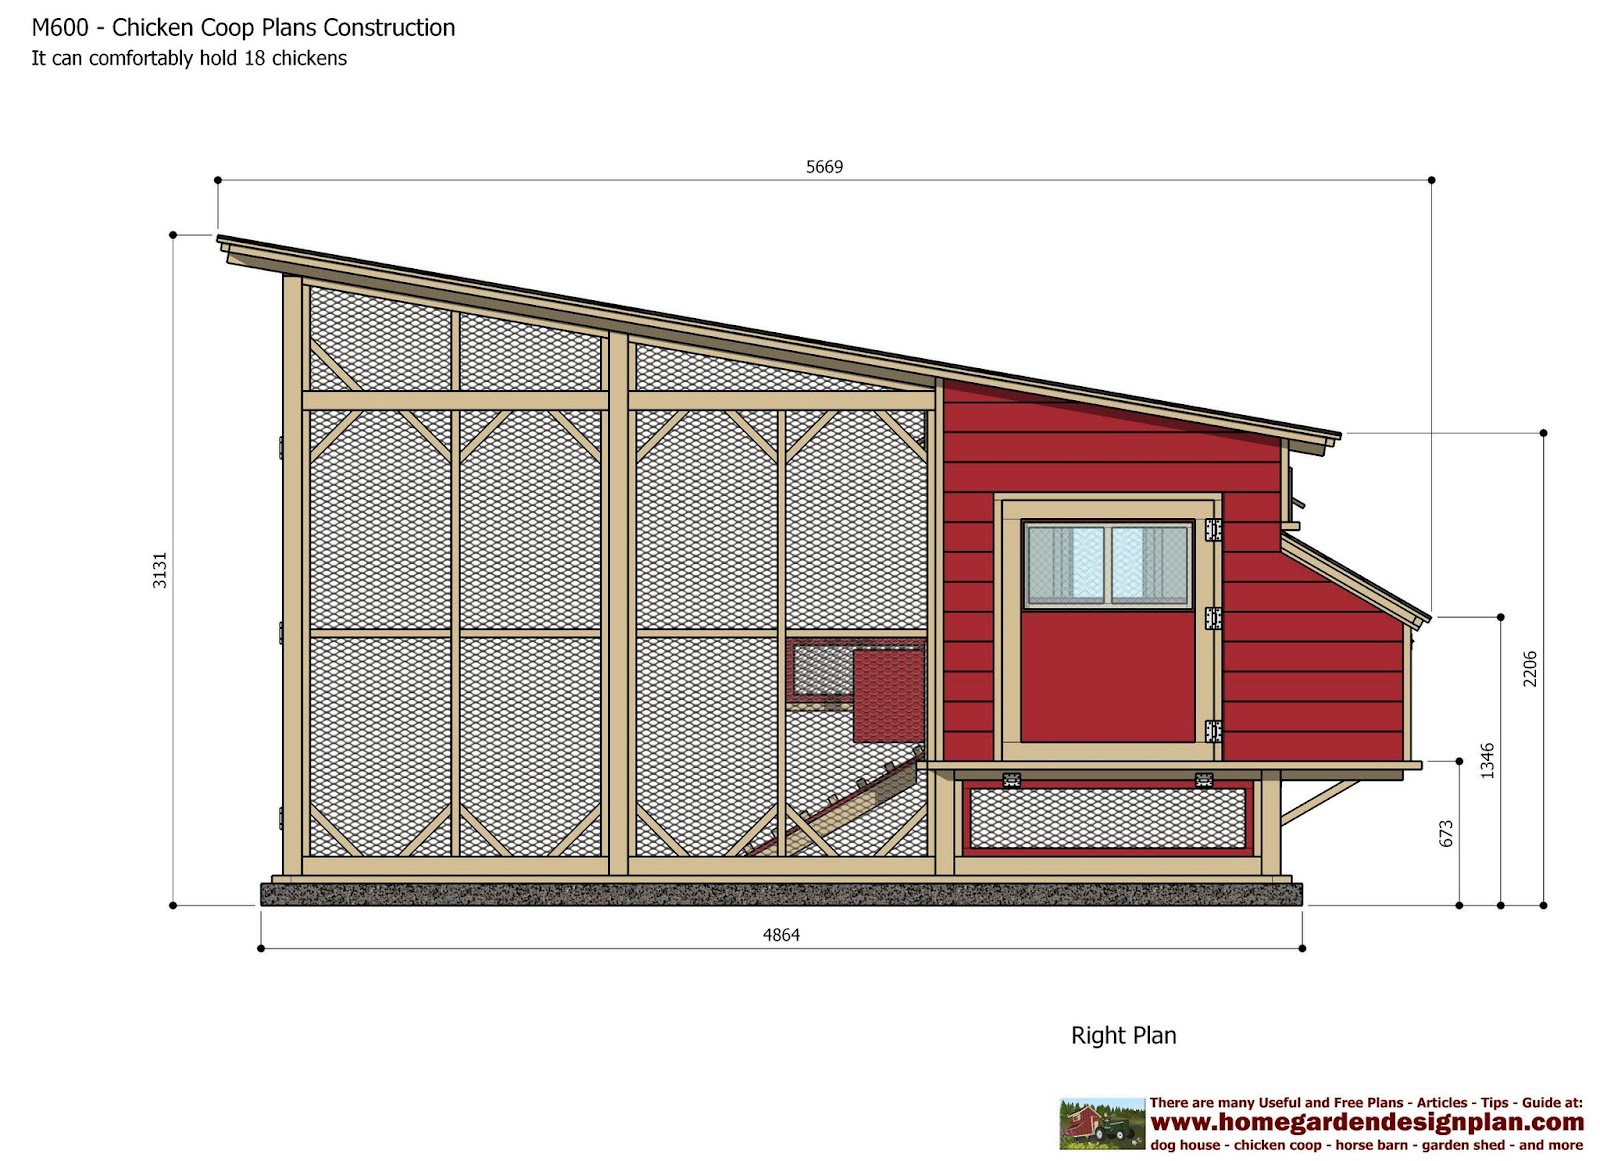 Home garden plans m600 chicken coop plans construction for How to build a blueprint